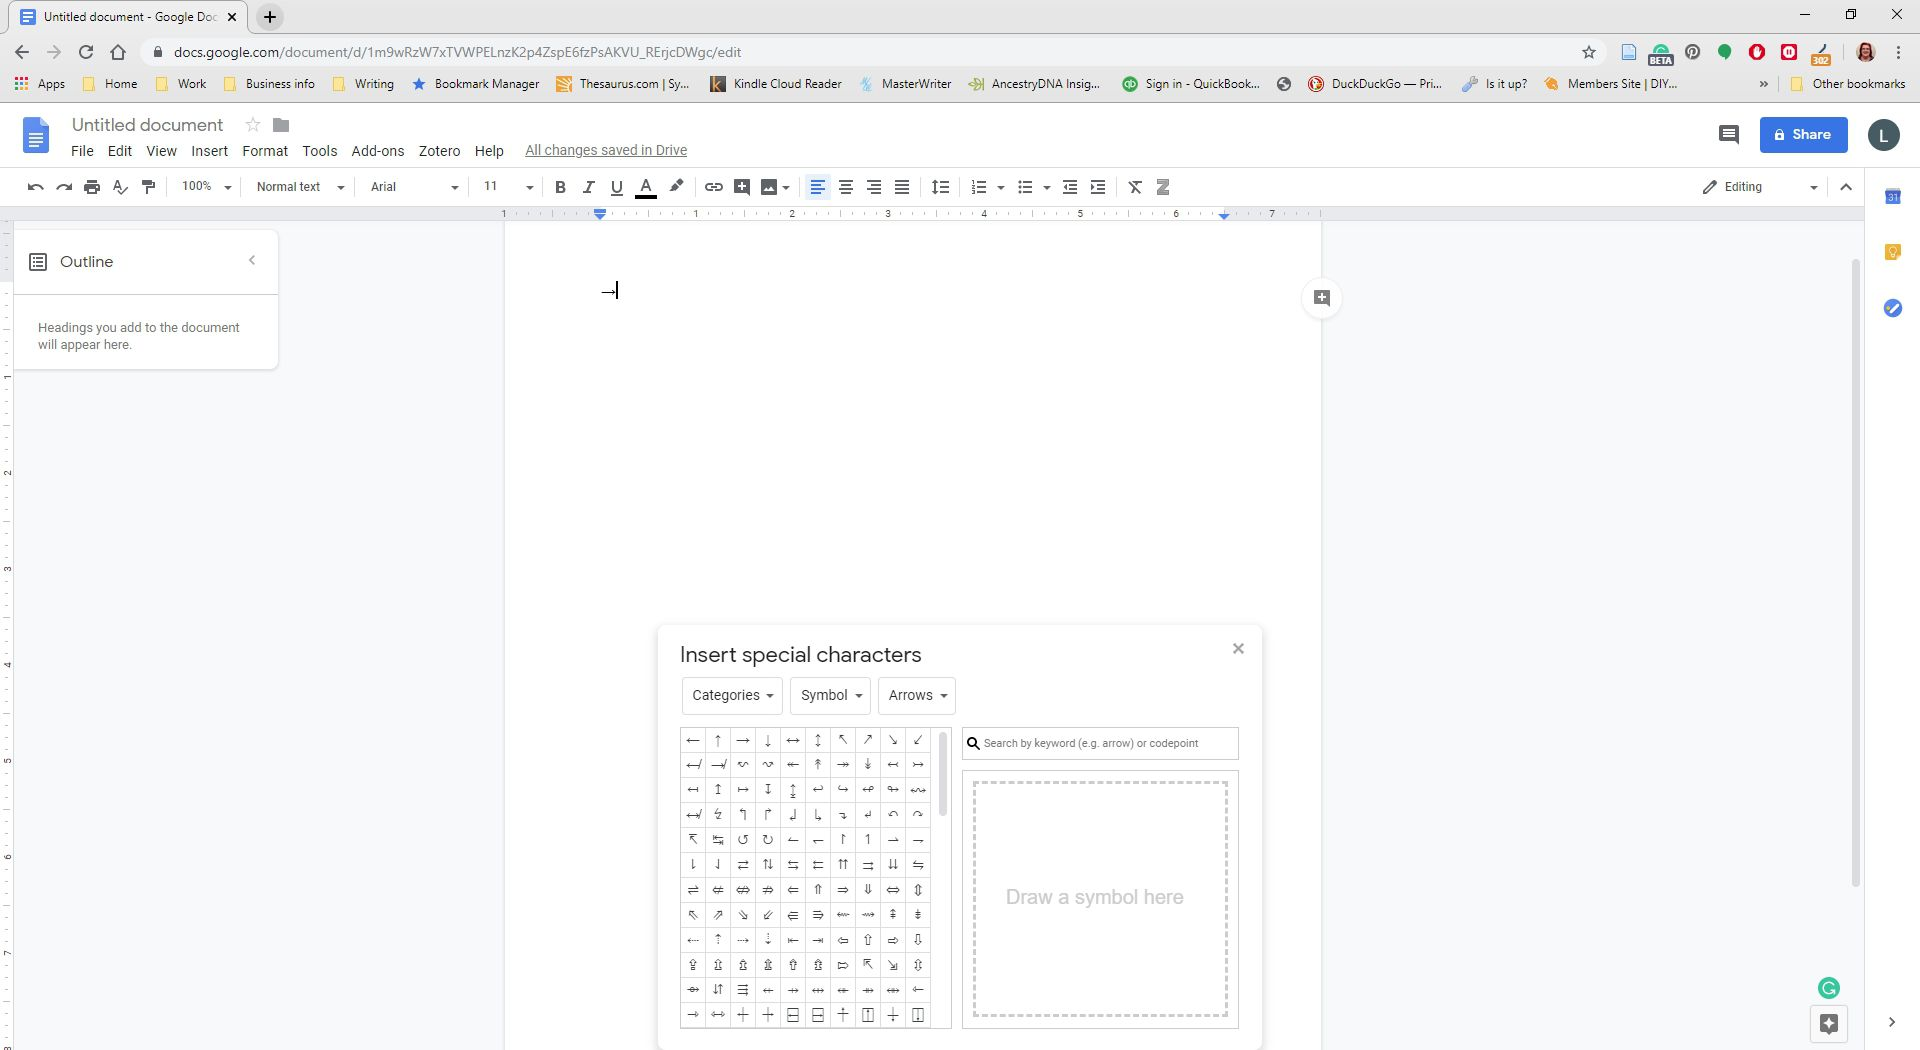 A character has been inserted into a Google Doc.